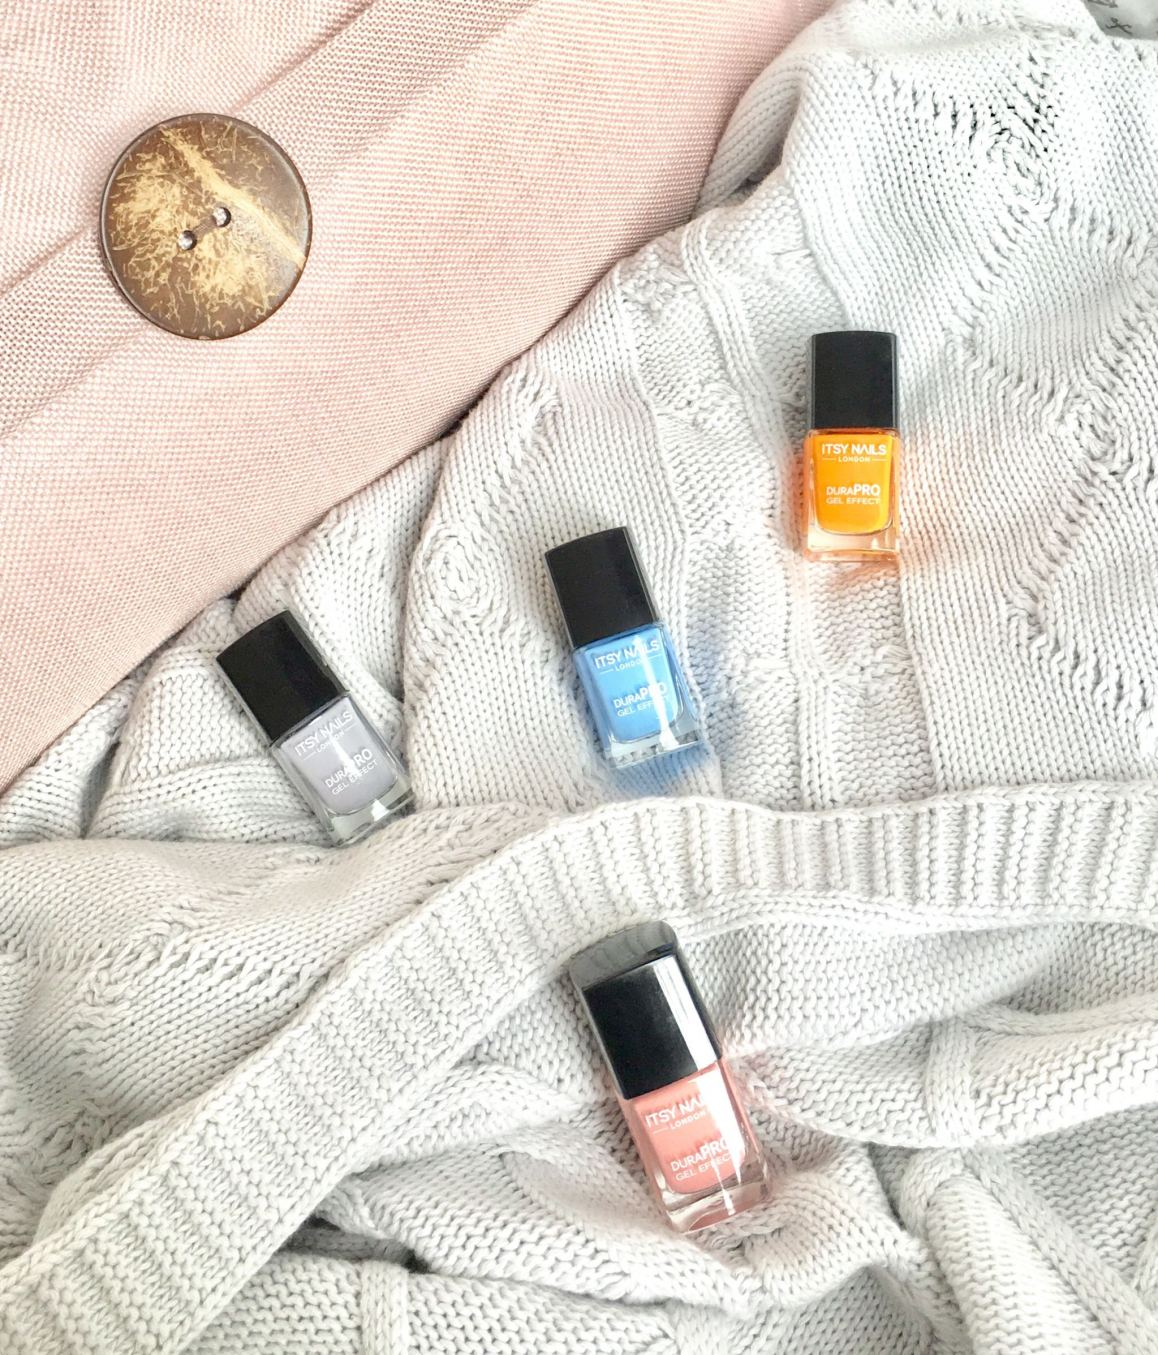 Itsy nails London. polishes scattered on a blanket.